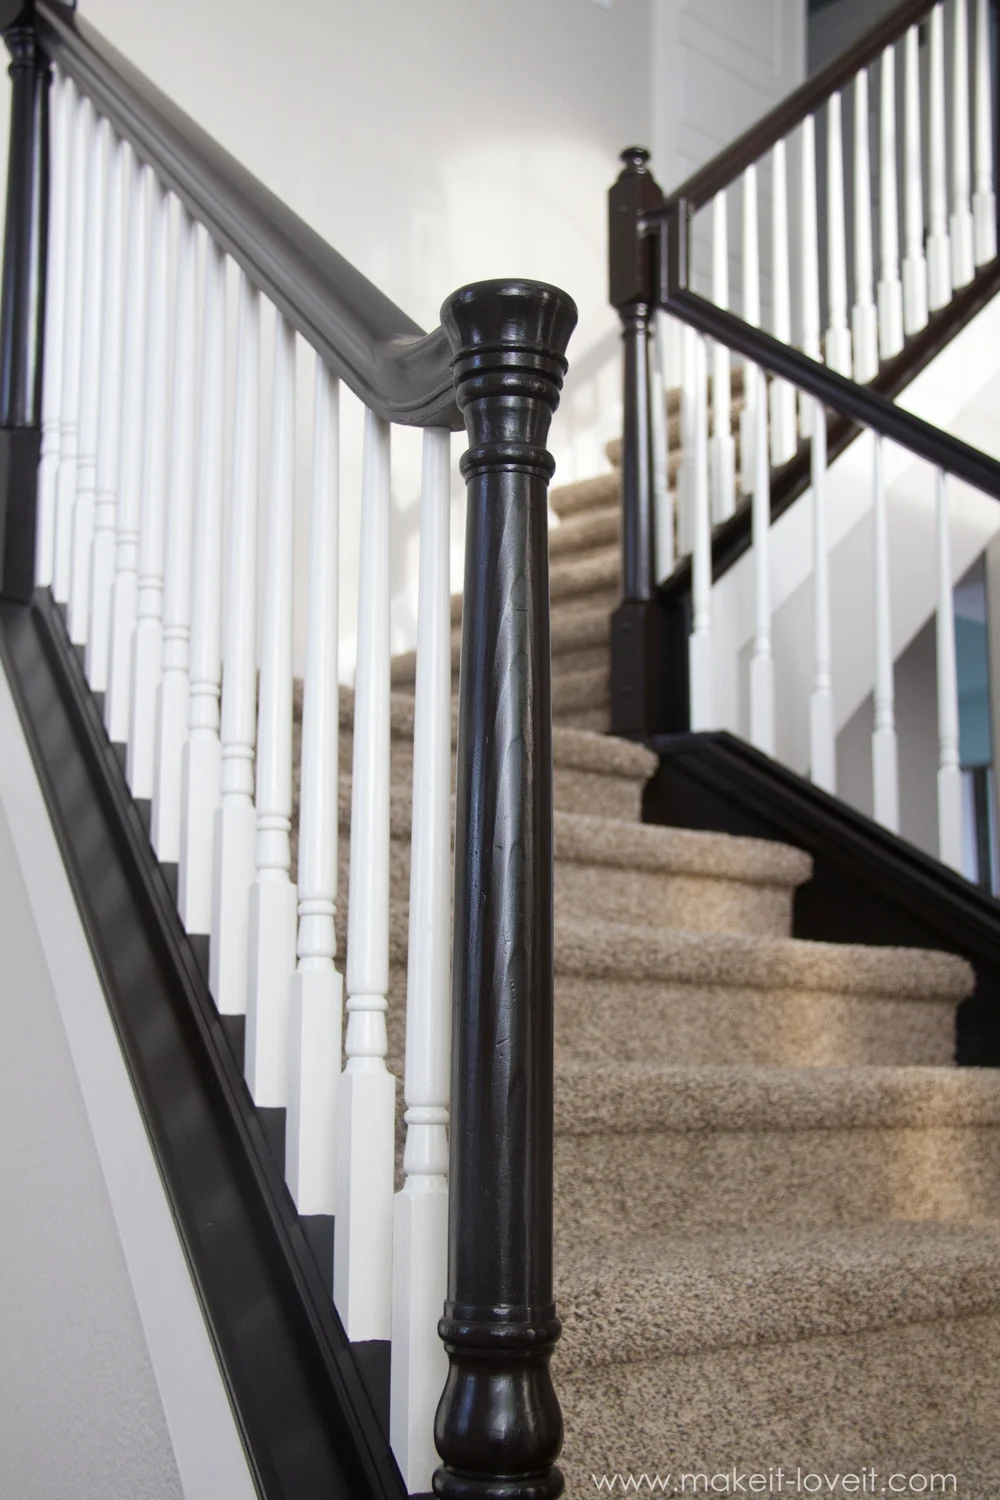 How To Paint Stain Wood Stair Railings Oak Banisters Spindles | Black Banister White Spindles | Black Railing | Funky | Victorian | Iron Spindle White Catwalk Brown Railing | White Mahogany Hand Rail Oak